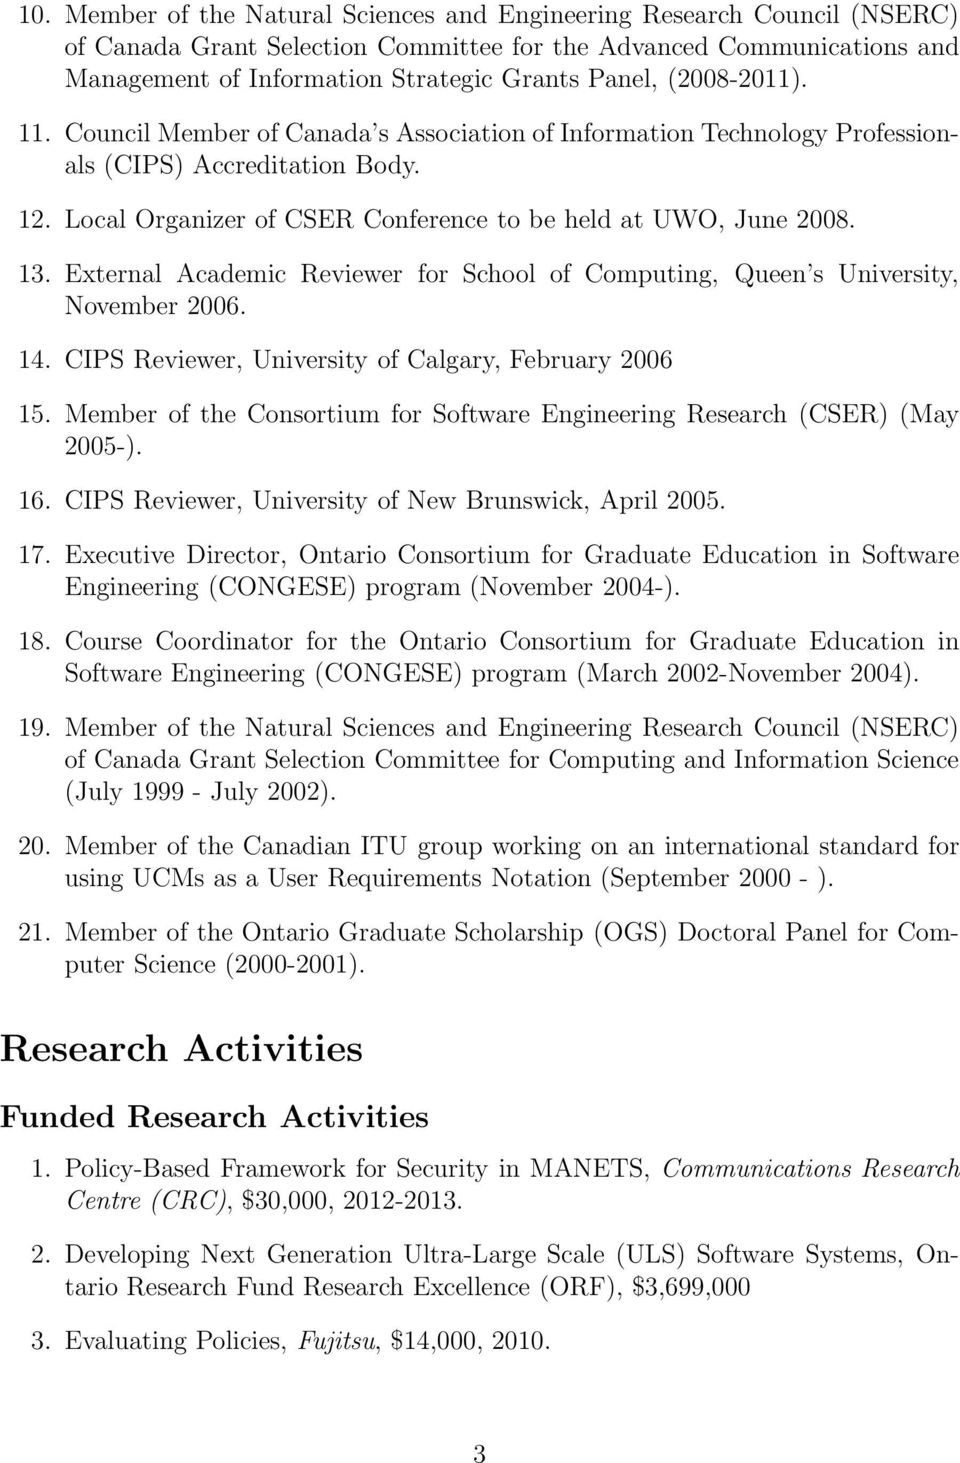 External Academic Reviewer for School of Computing, Queen s University, November 2006. 14. CIPS Reviewer, University of Calgary, February 2006 15.